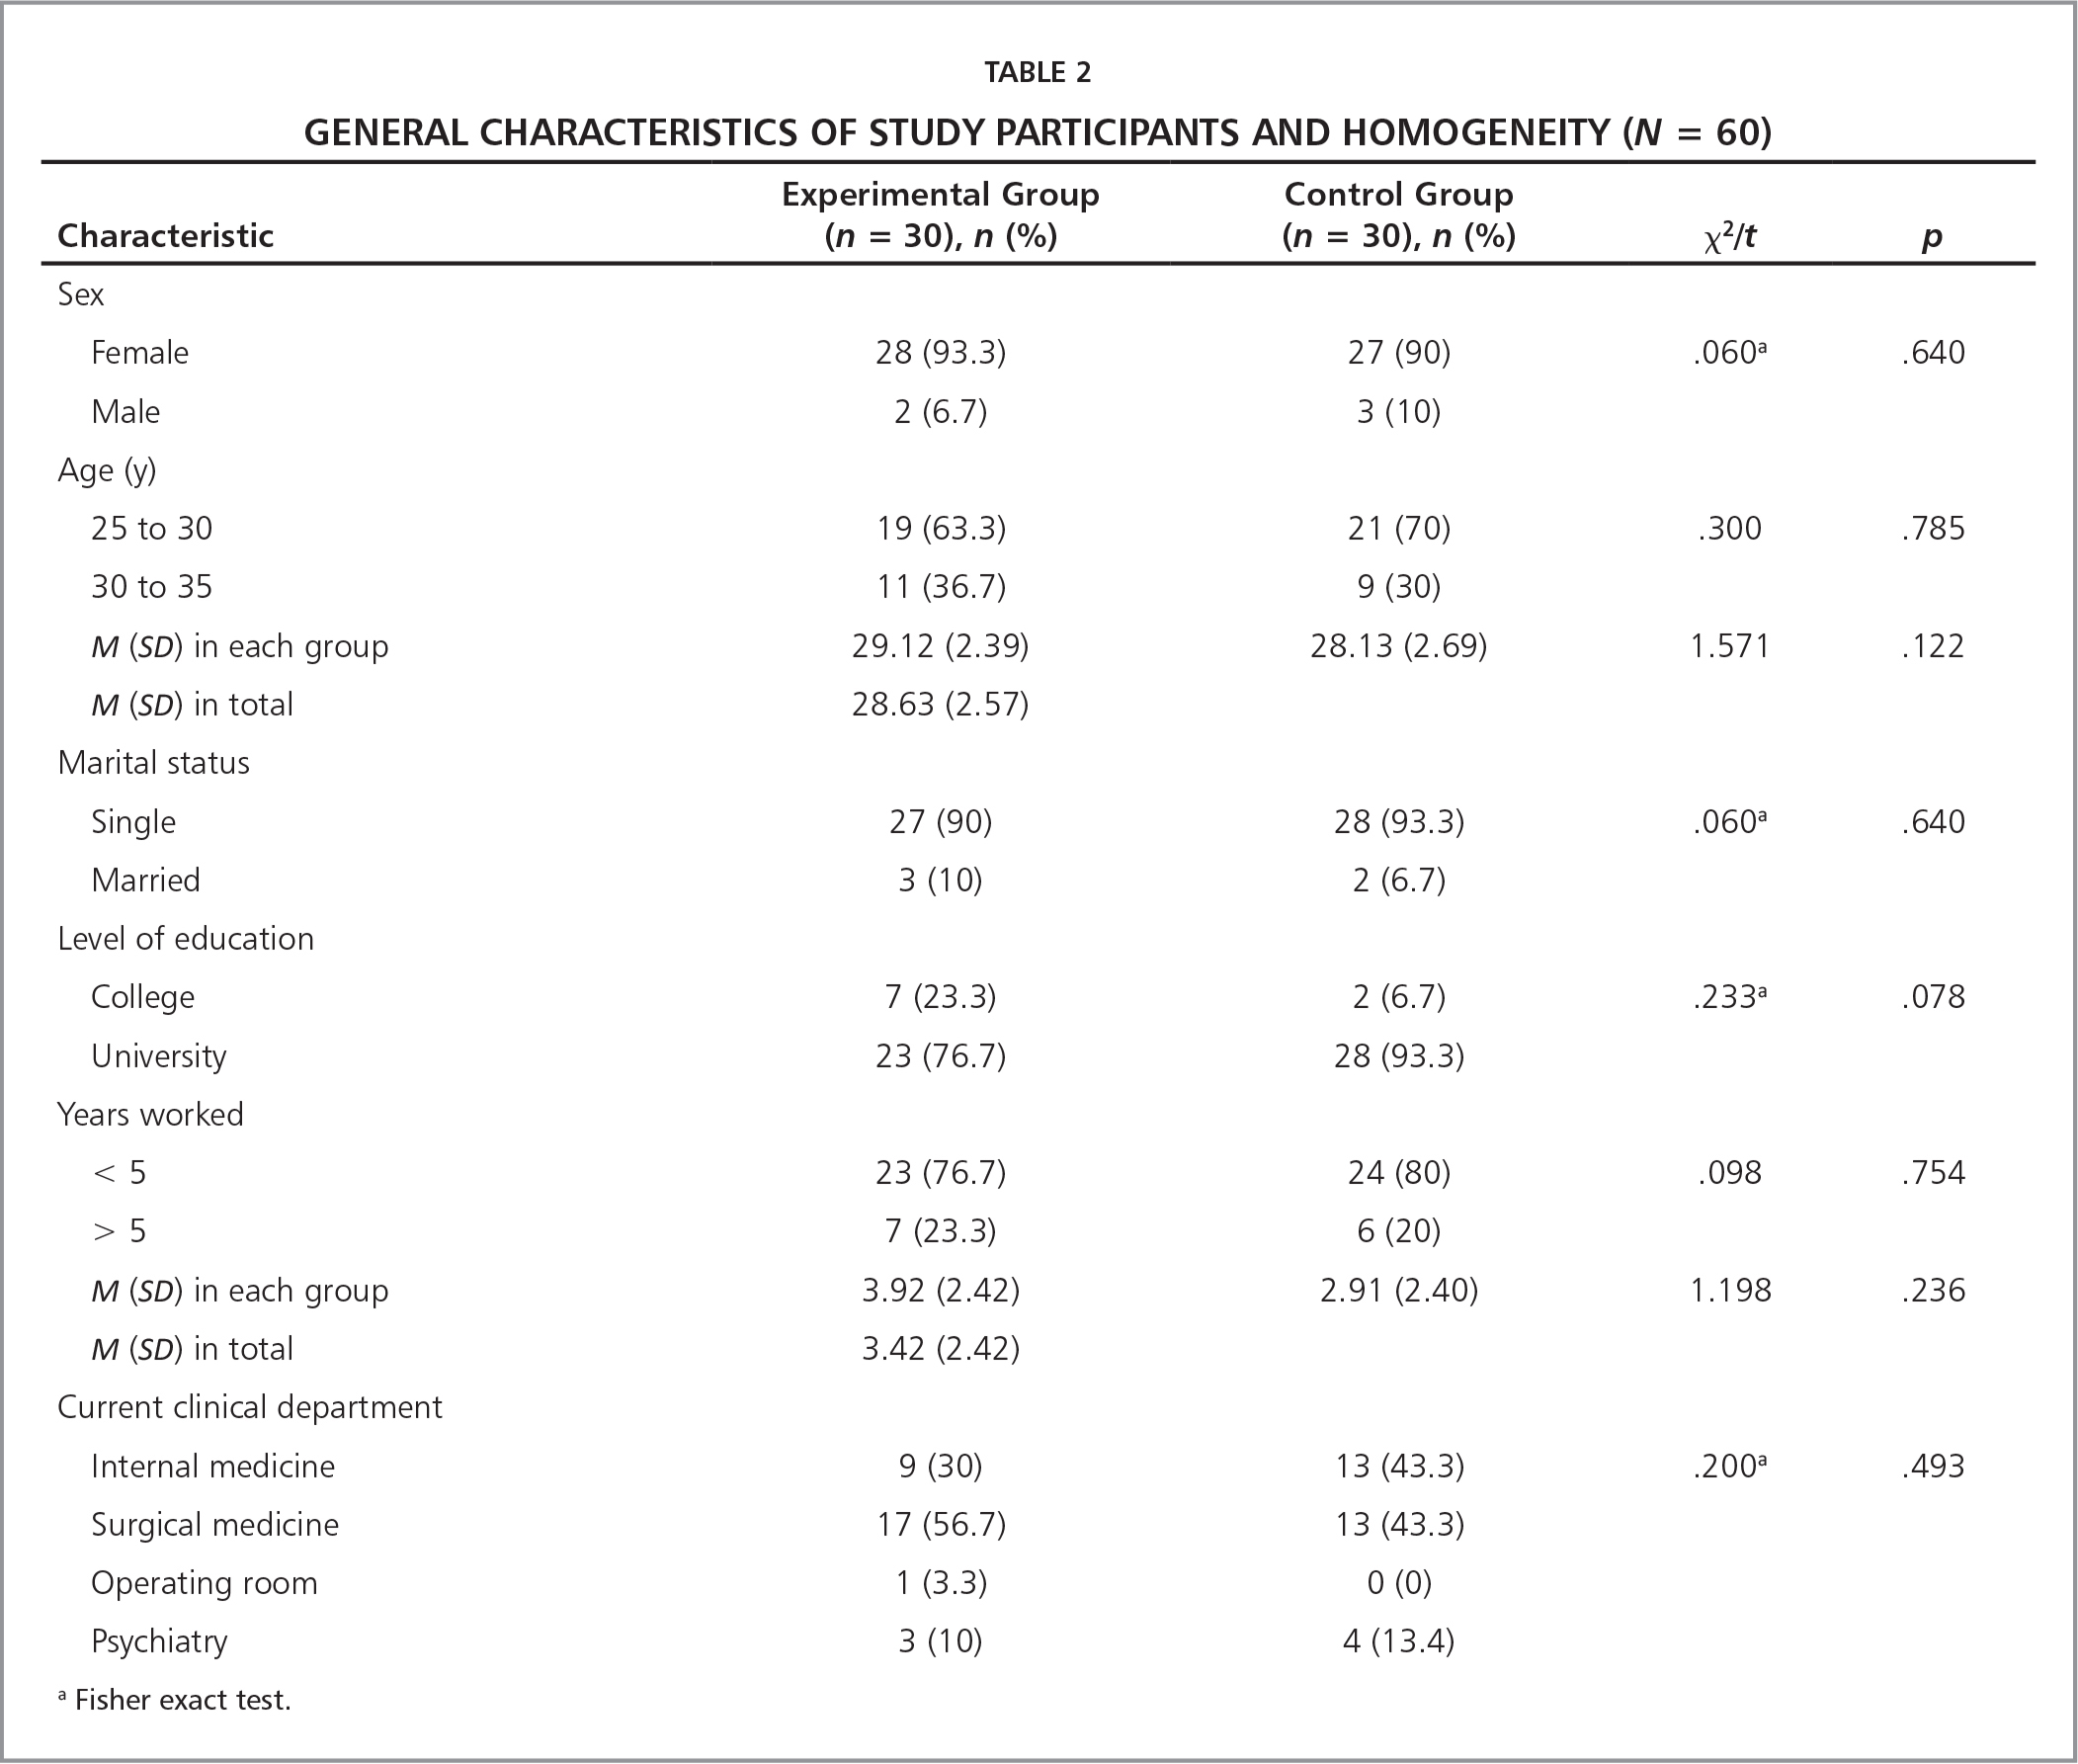 General Characteristics of Study Participants and Homogeneity (N = 60)